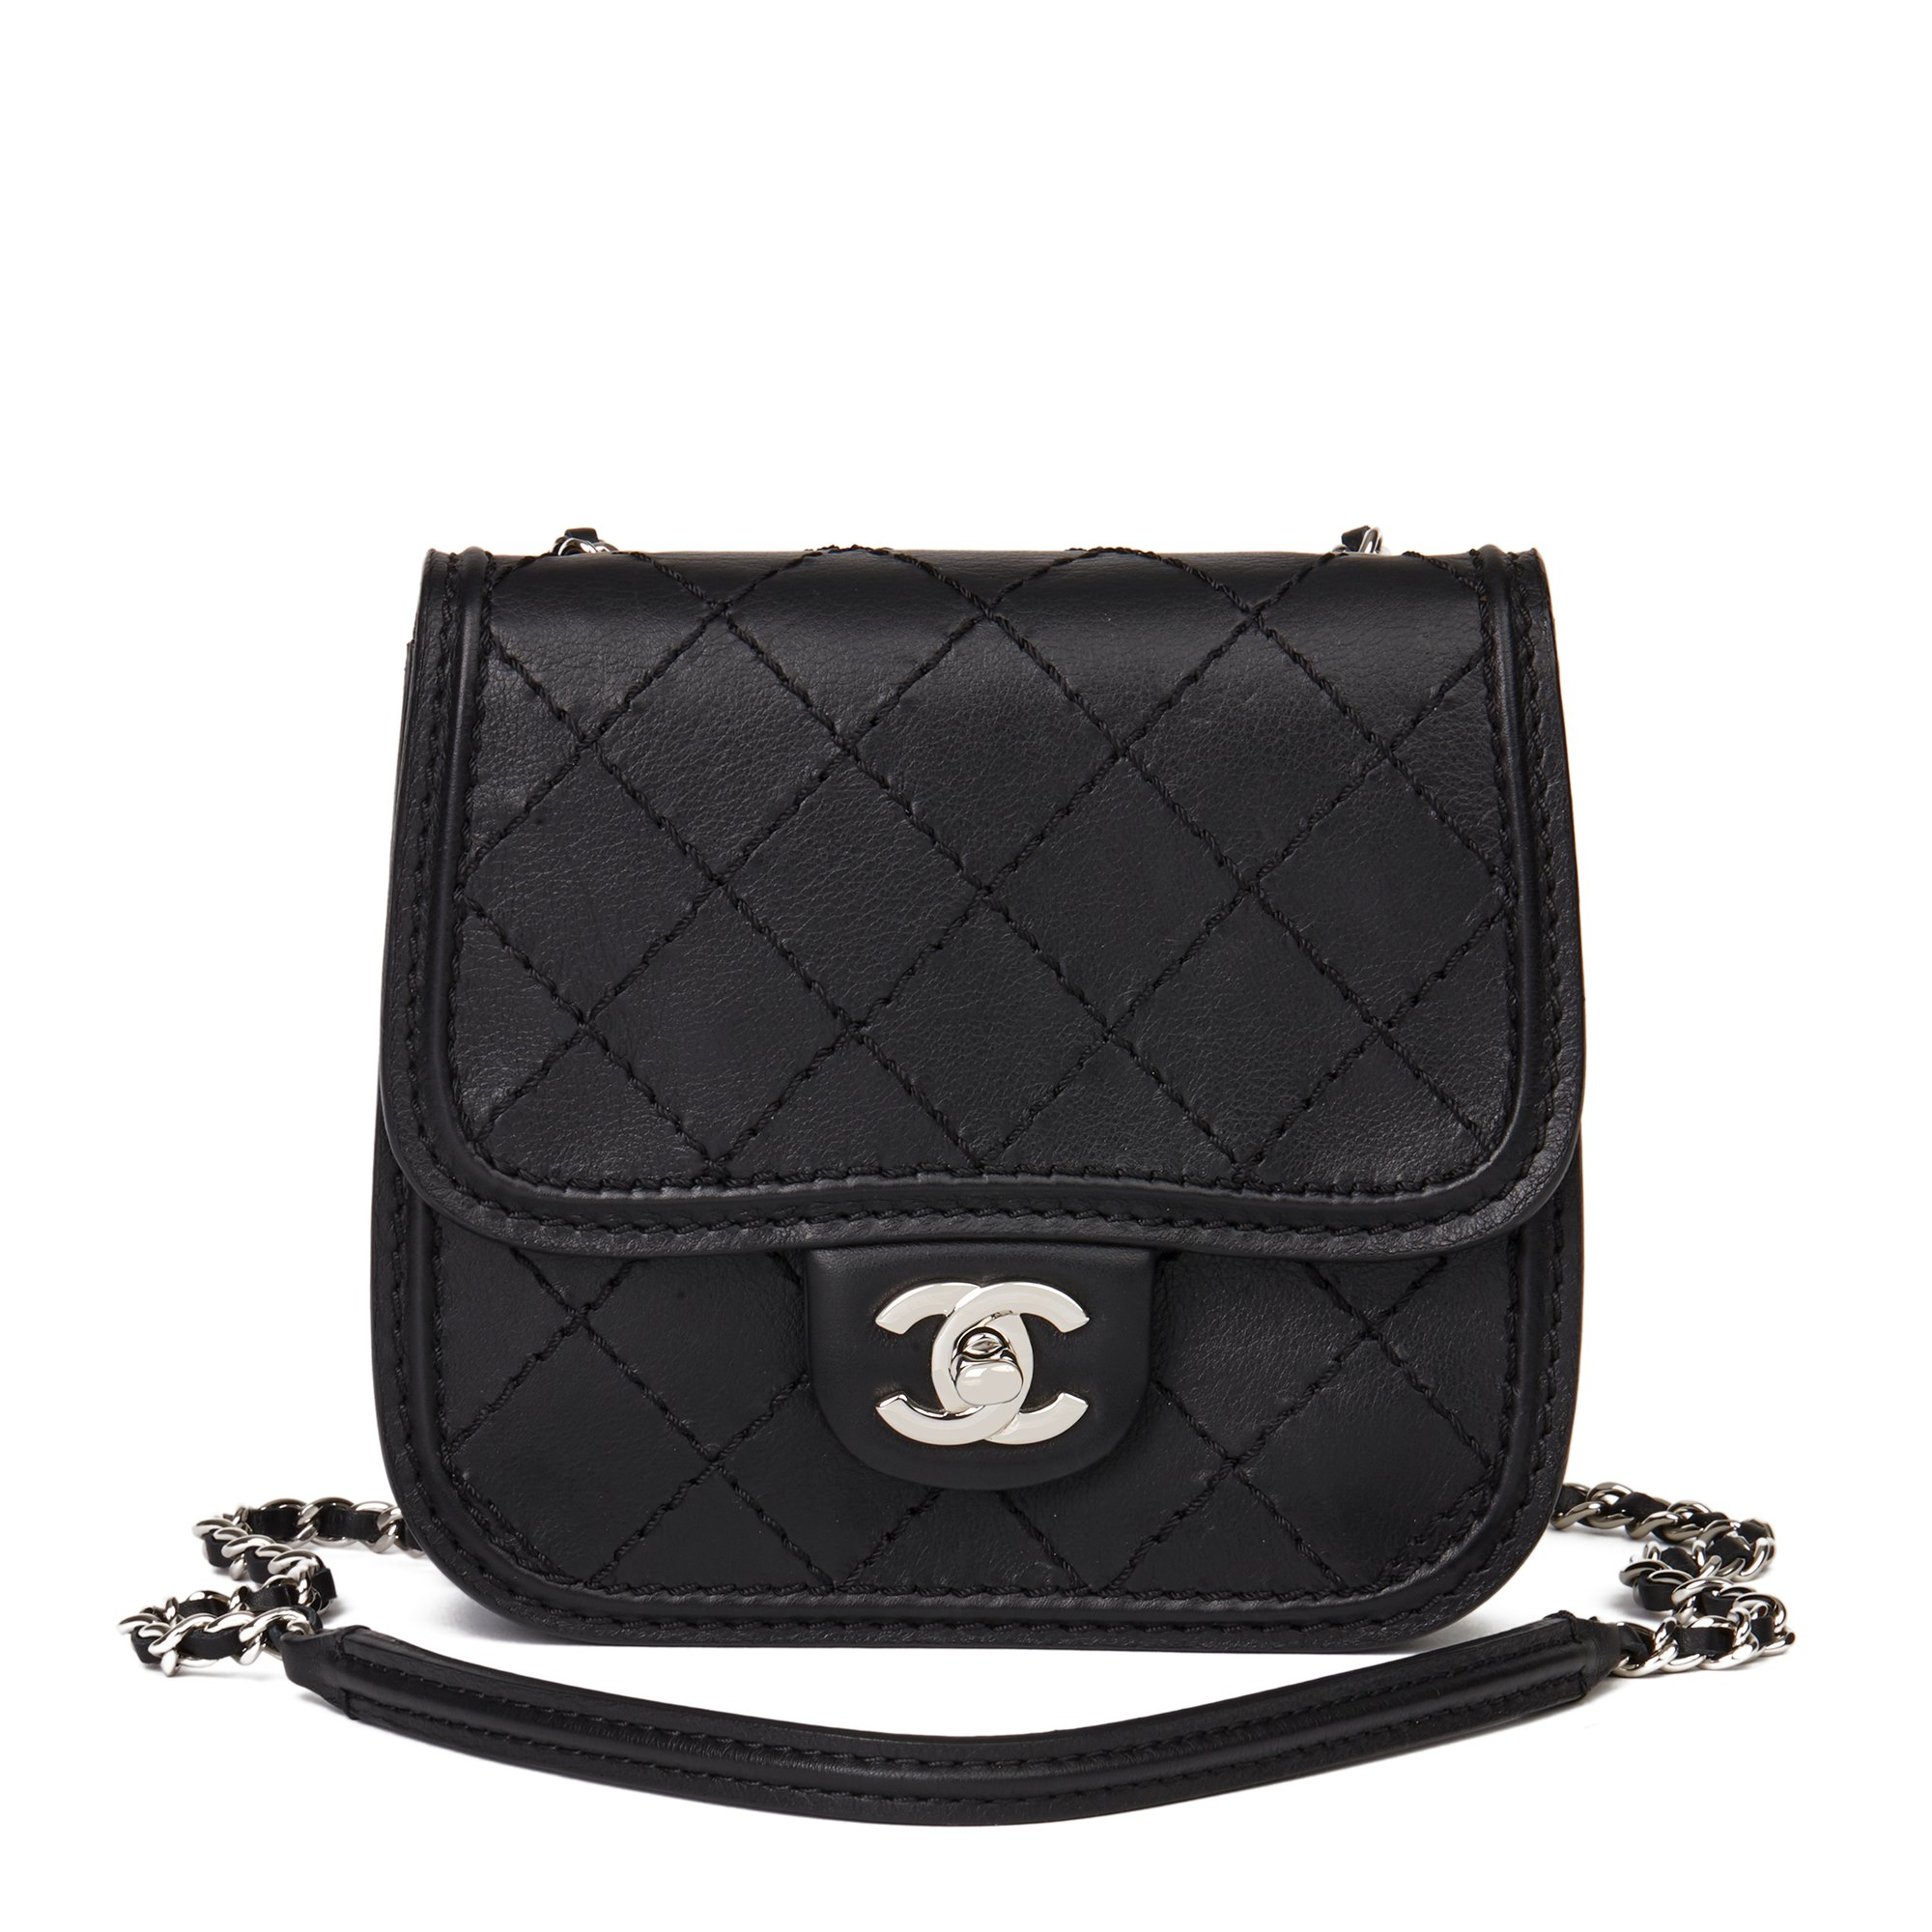 Chanel Black Quilted Calfskin Leather Citizen Mini Flap Bag